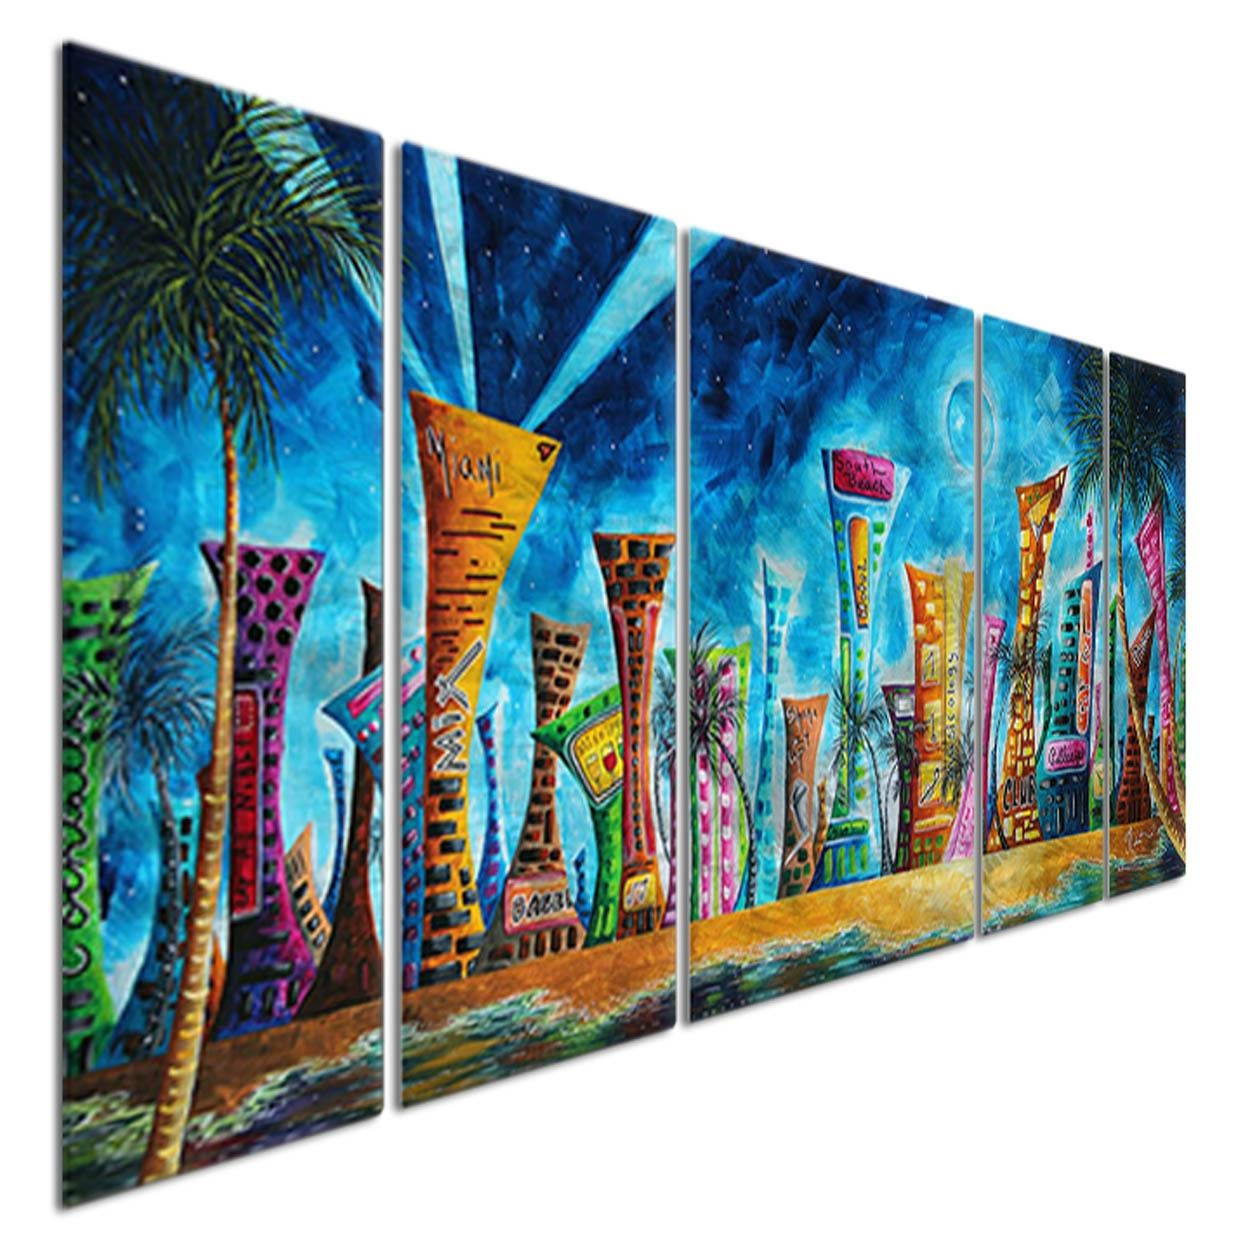 Metal Wall Art Miami Night Life Megan Duncanson Abstract Cityscape With Most Up To Date Megan Duncanson Metal Wall Art (View 16 of 25)